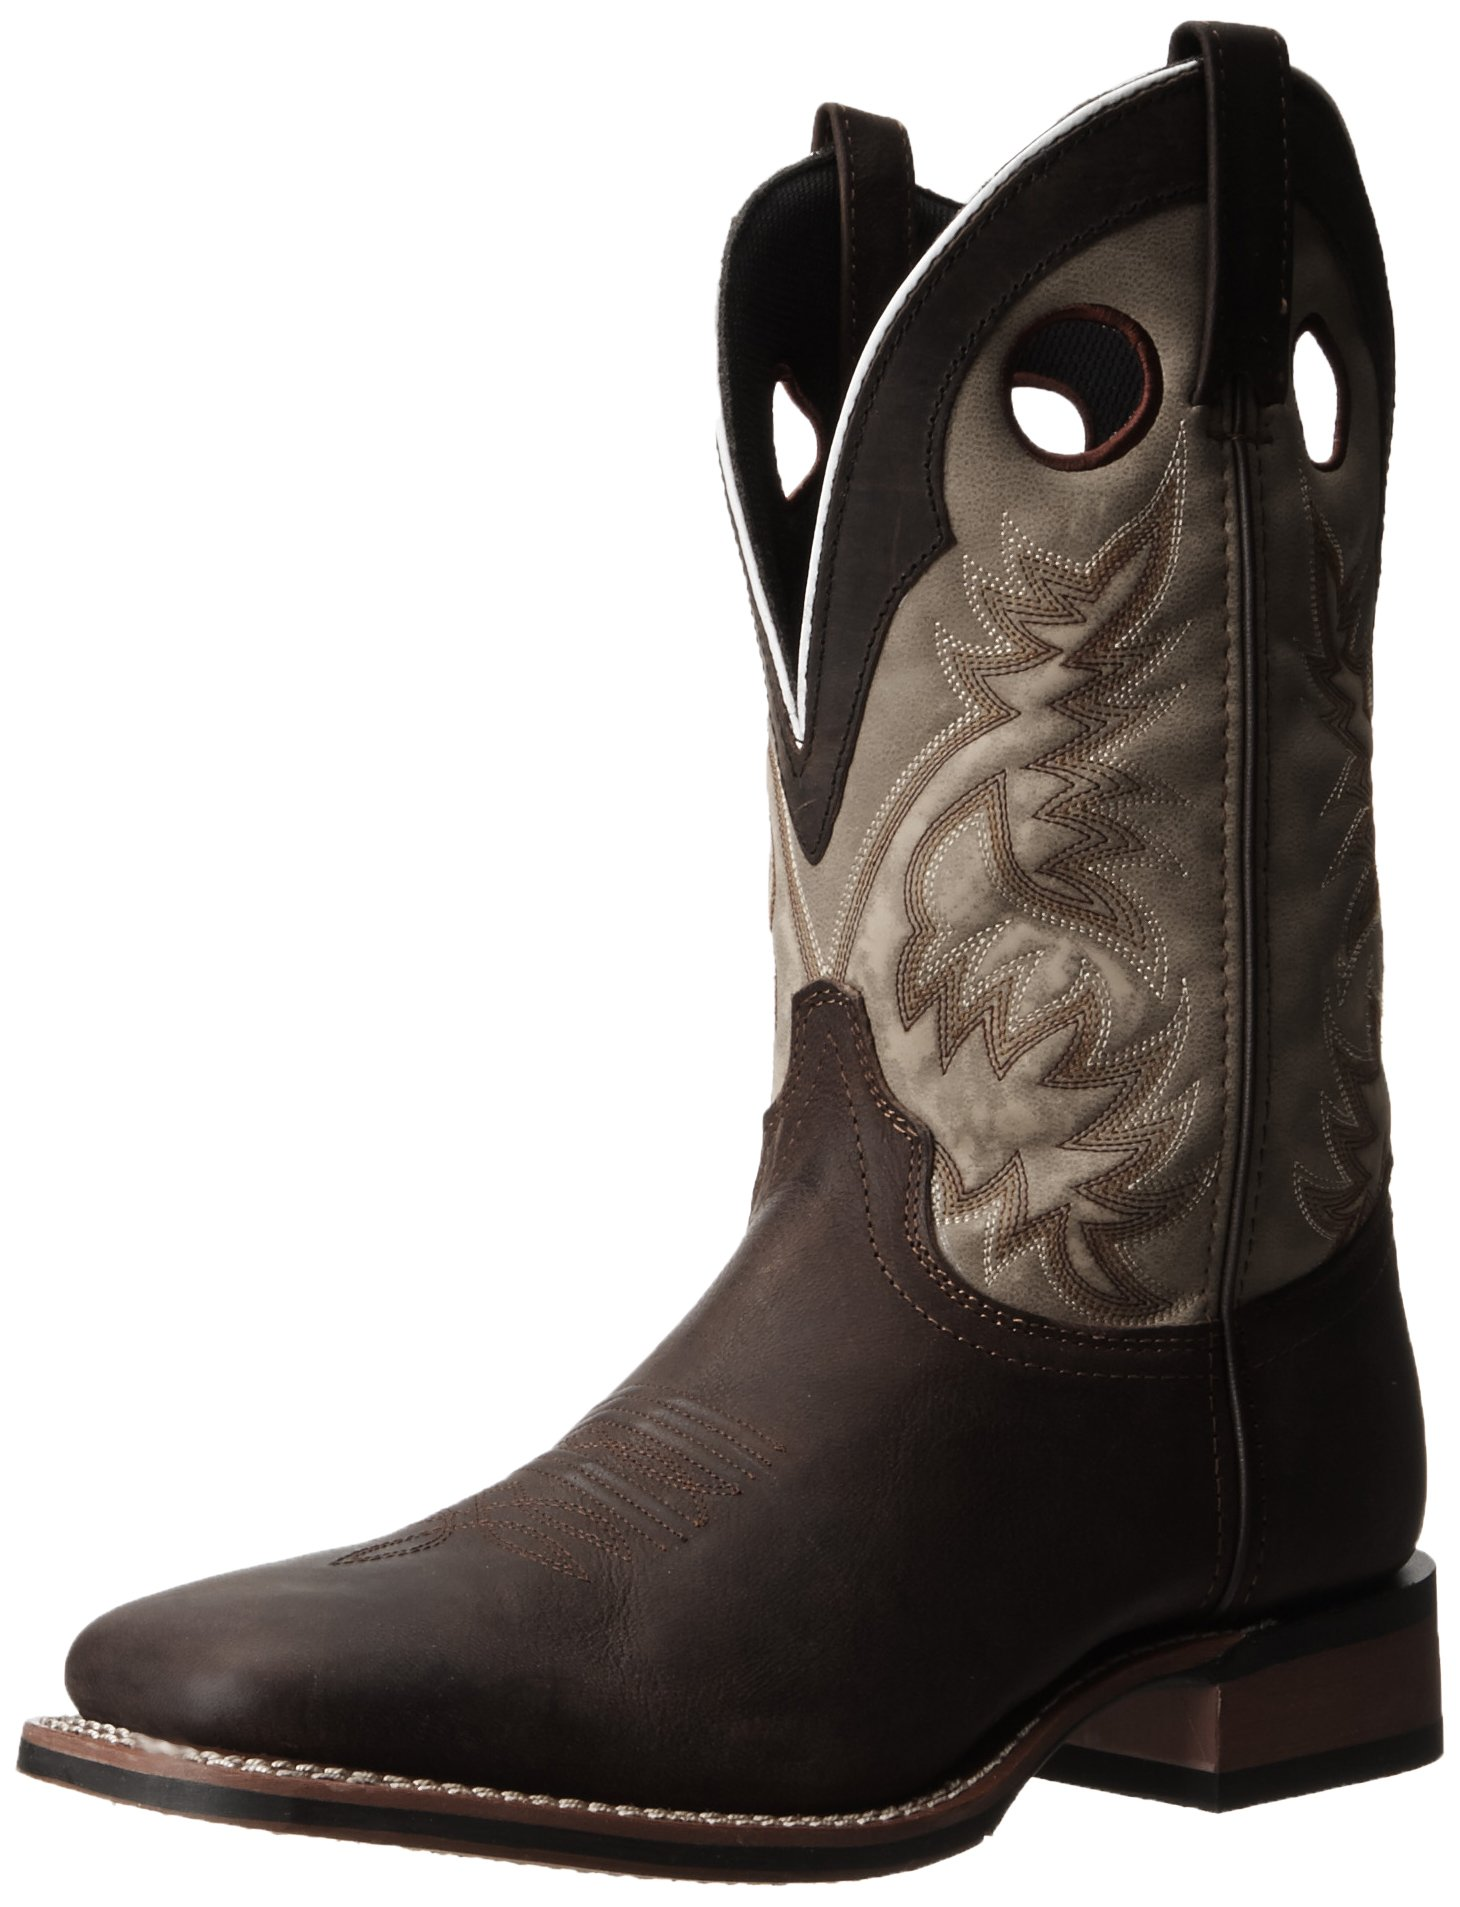 Laredo Men's Collared Western Boot,Dark Brown/Tan,13 XW US